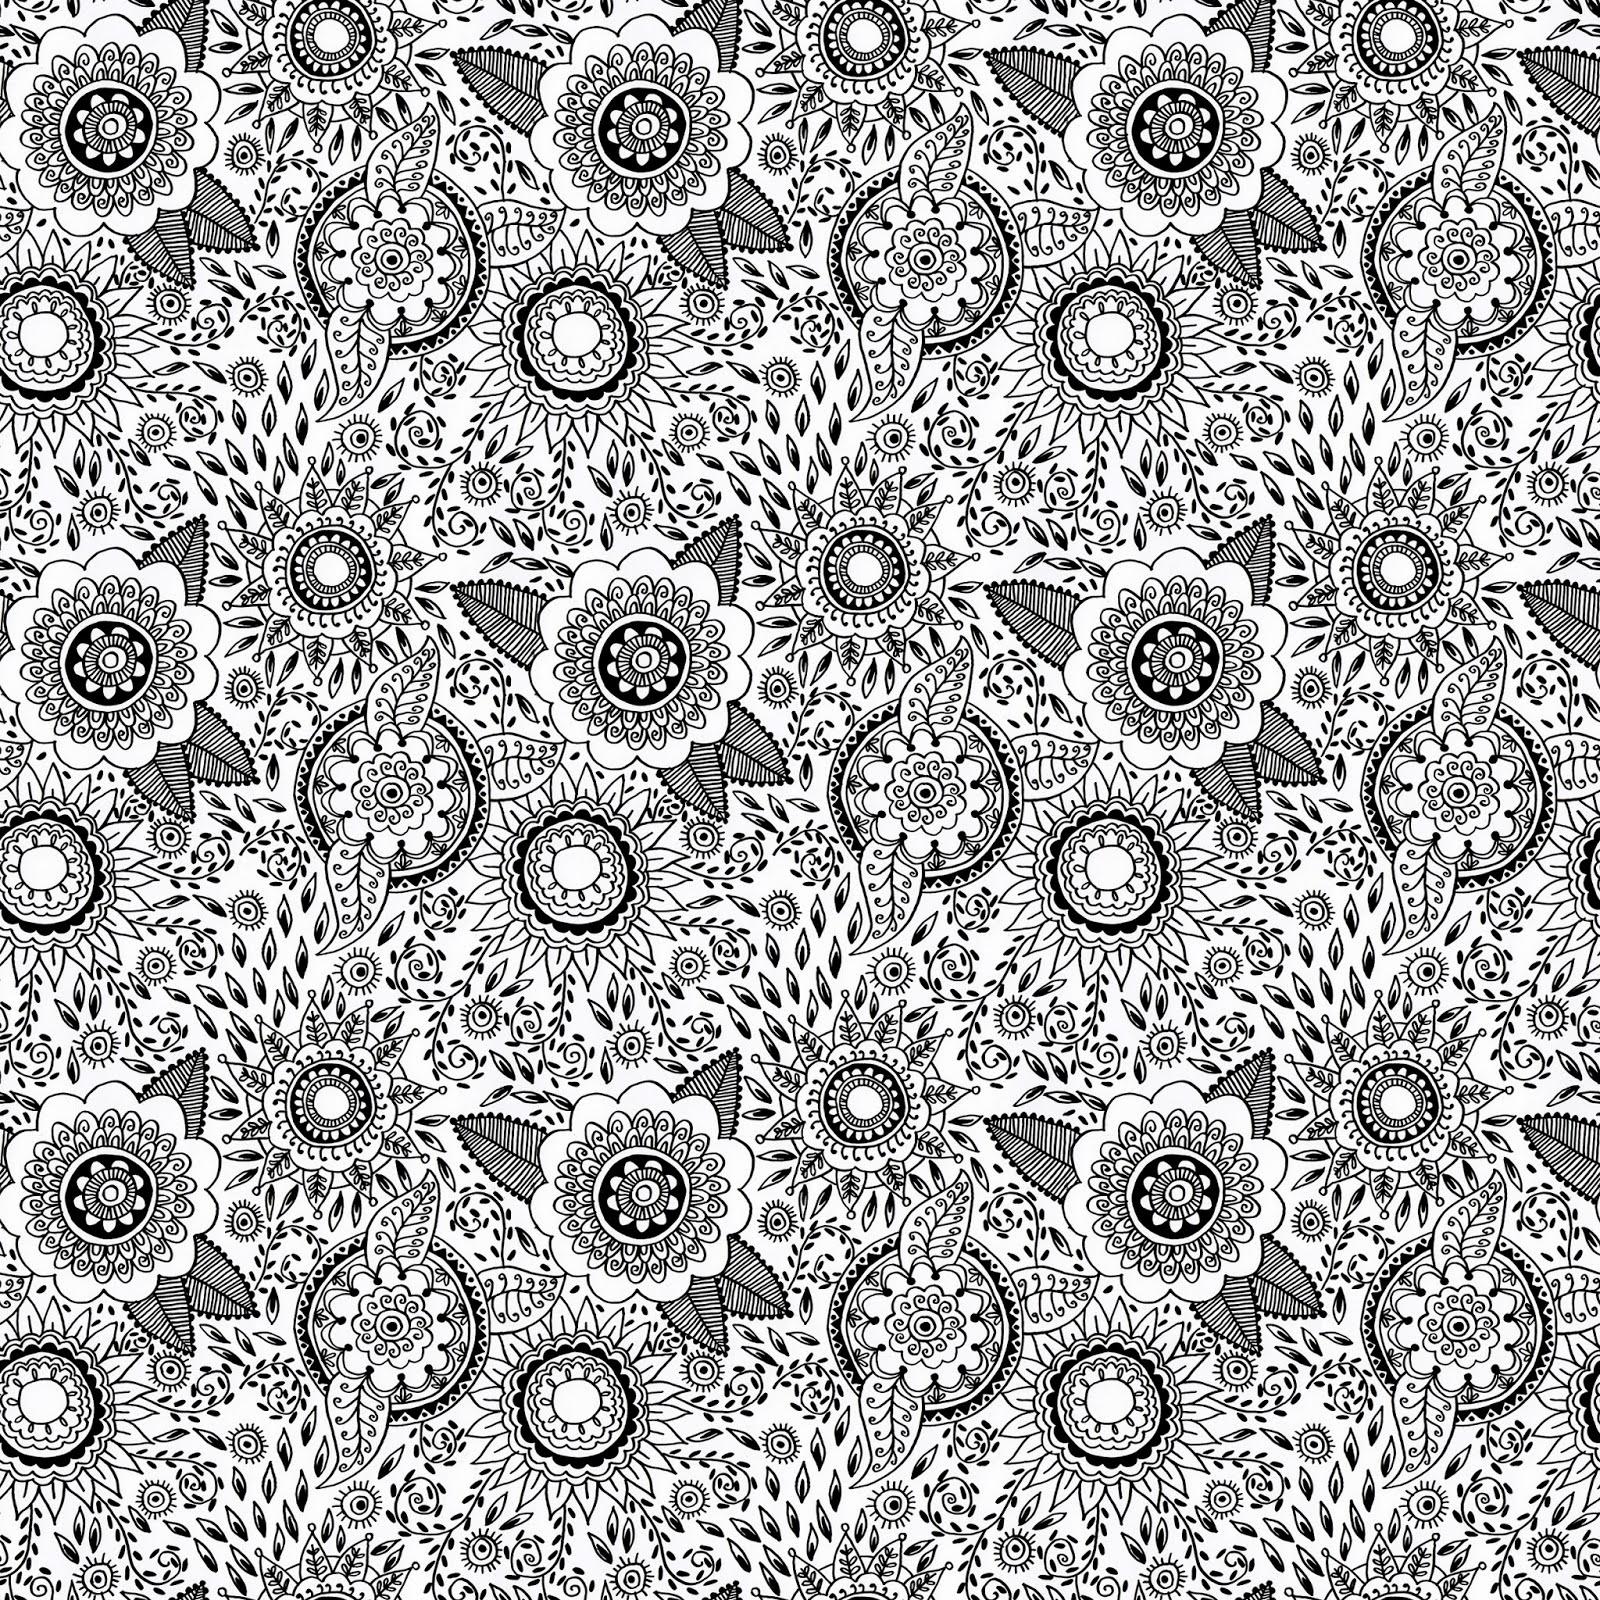 henna patterns wallpaper viewing gallery